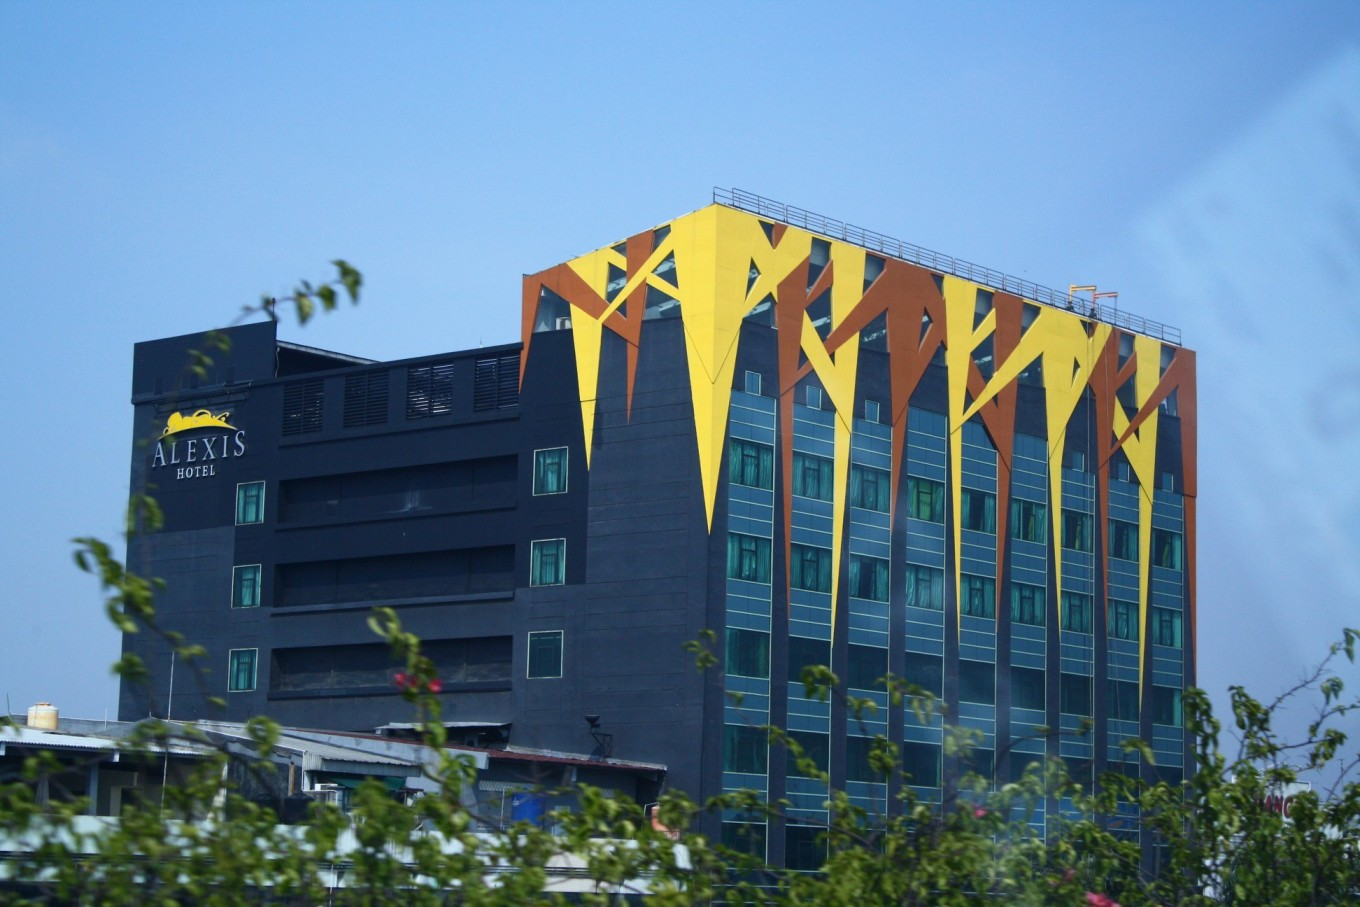 Anies firm to close down Alexis Hotel